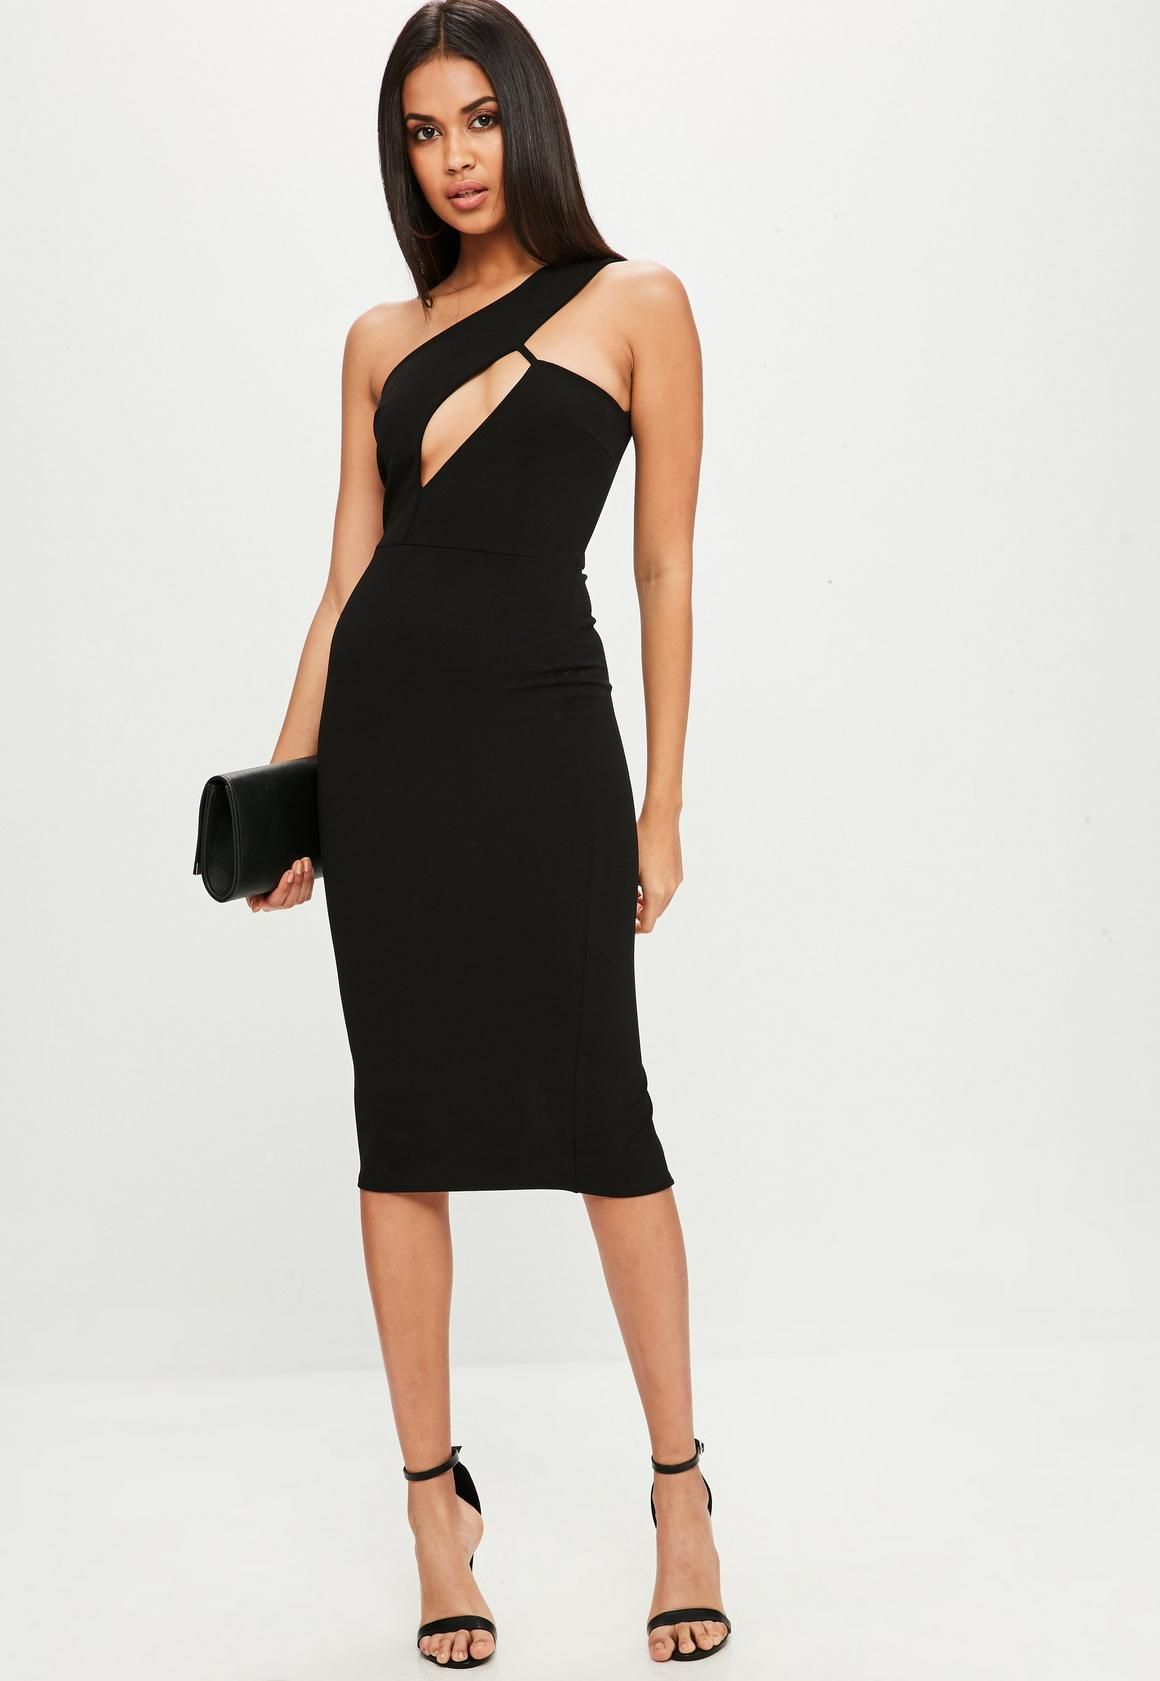 2052b1e7340 Missguided Black One Shoulder Bodycon Midi Dress in 2019 | ootd ...